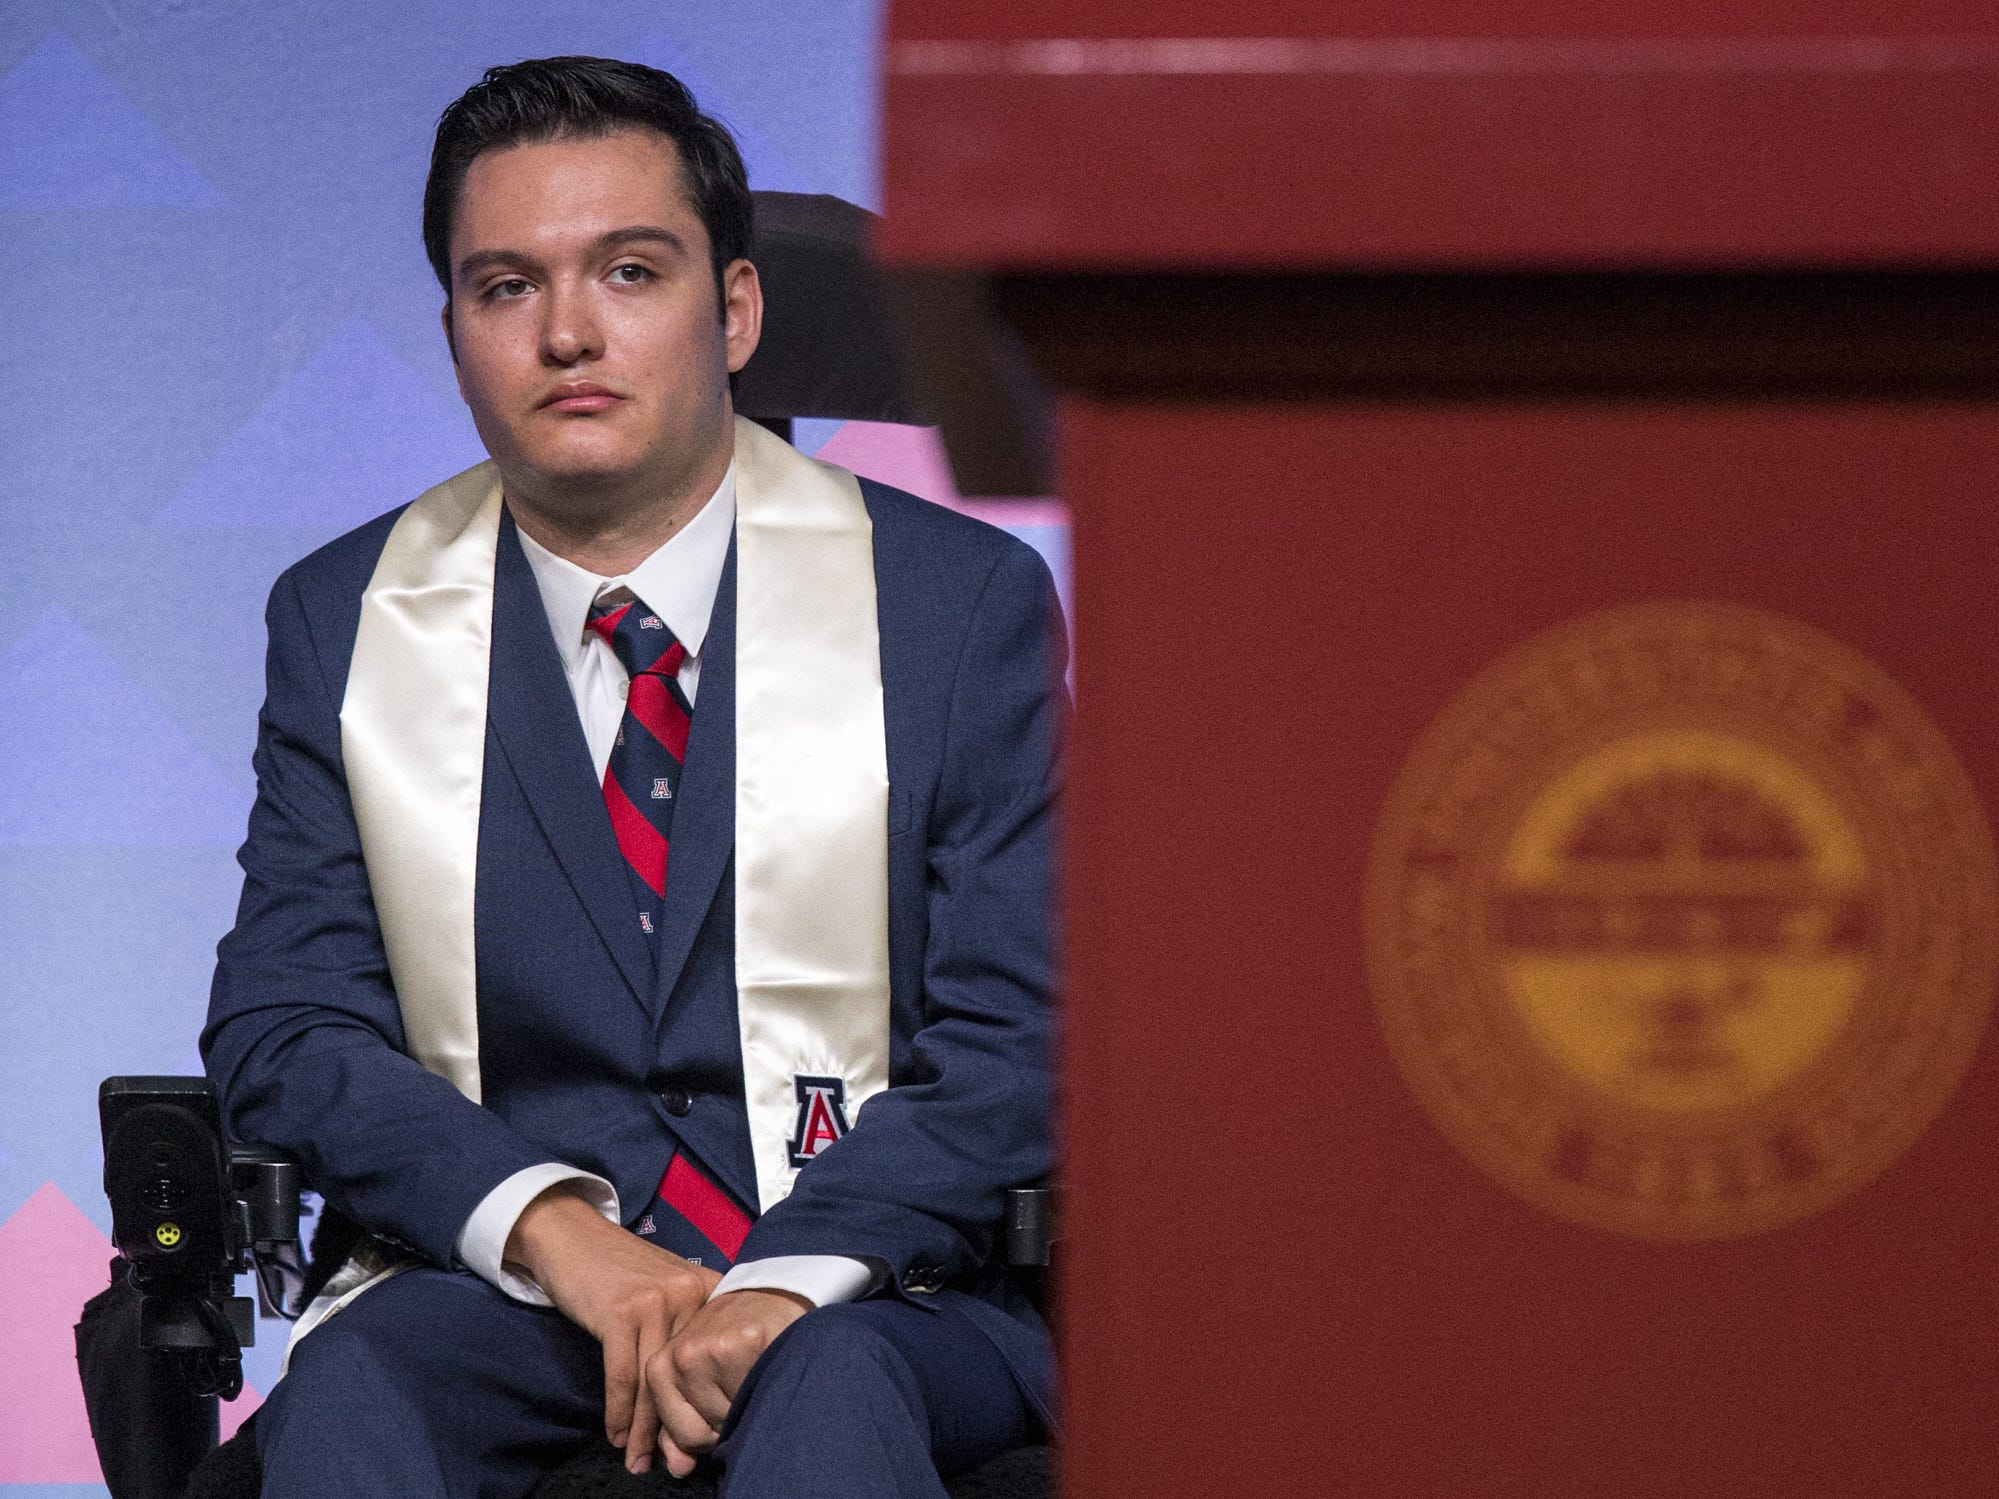 Jeffrey Bristol, 24, listens during University of Arizona's Eller College of Management convocation on Saturday, May 11, 2019, at McKale Memorial Center in Tucson, Ariz. Bristol, who was diagnosed with cavernous angioma as a child, has begun to learn how to walk with the help of an exoskeleton created as part of an engineering school design program.